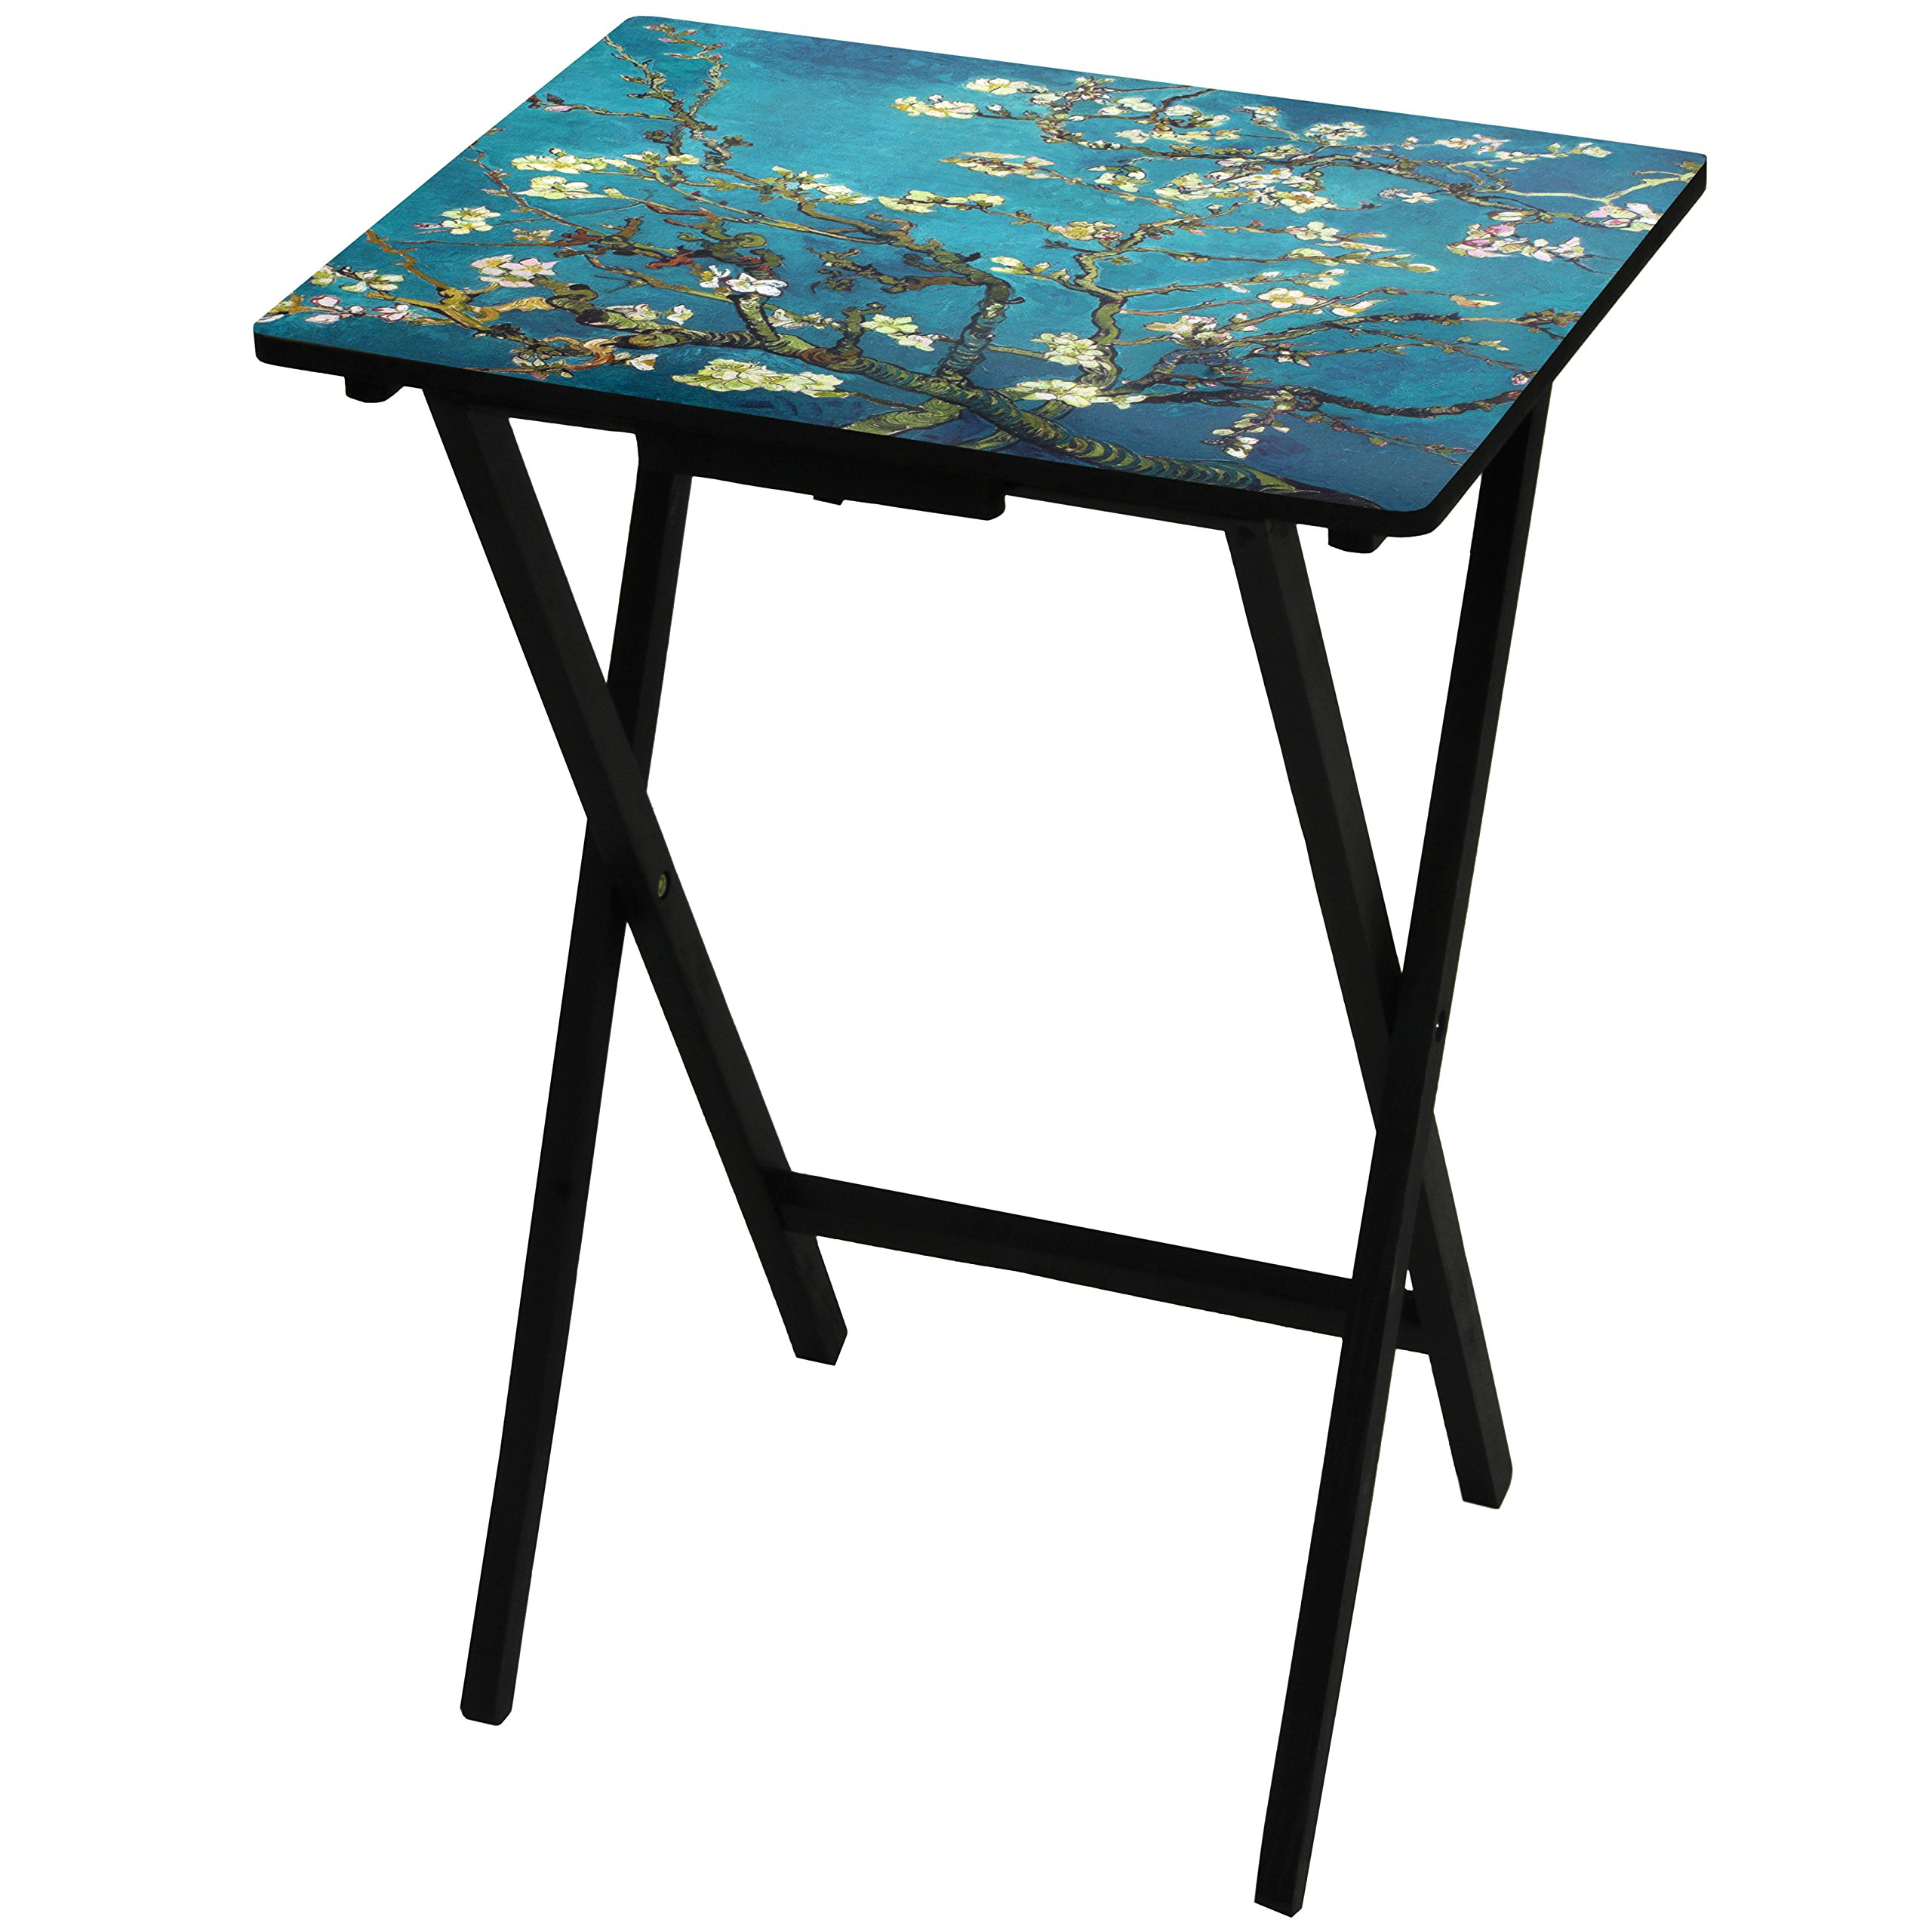 ORIENTAL FURNITURE Van Gogh Almond Blossoms TV Tray by ORIENTAL FURNITURE